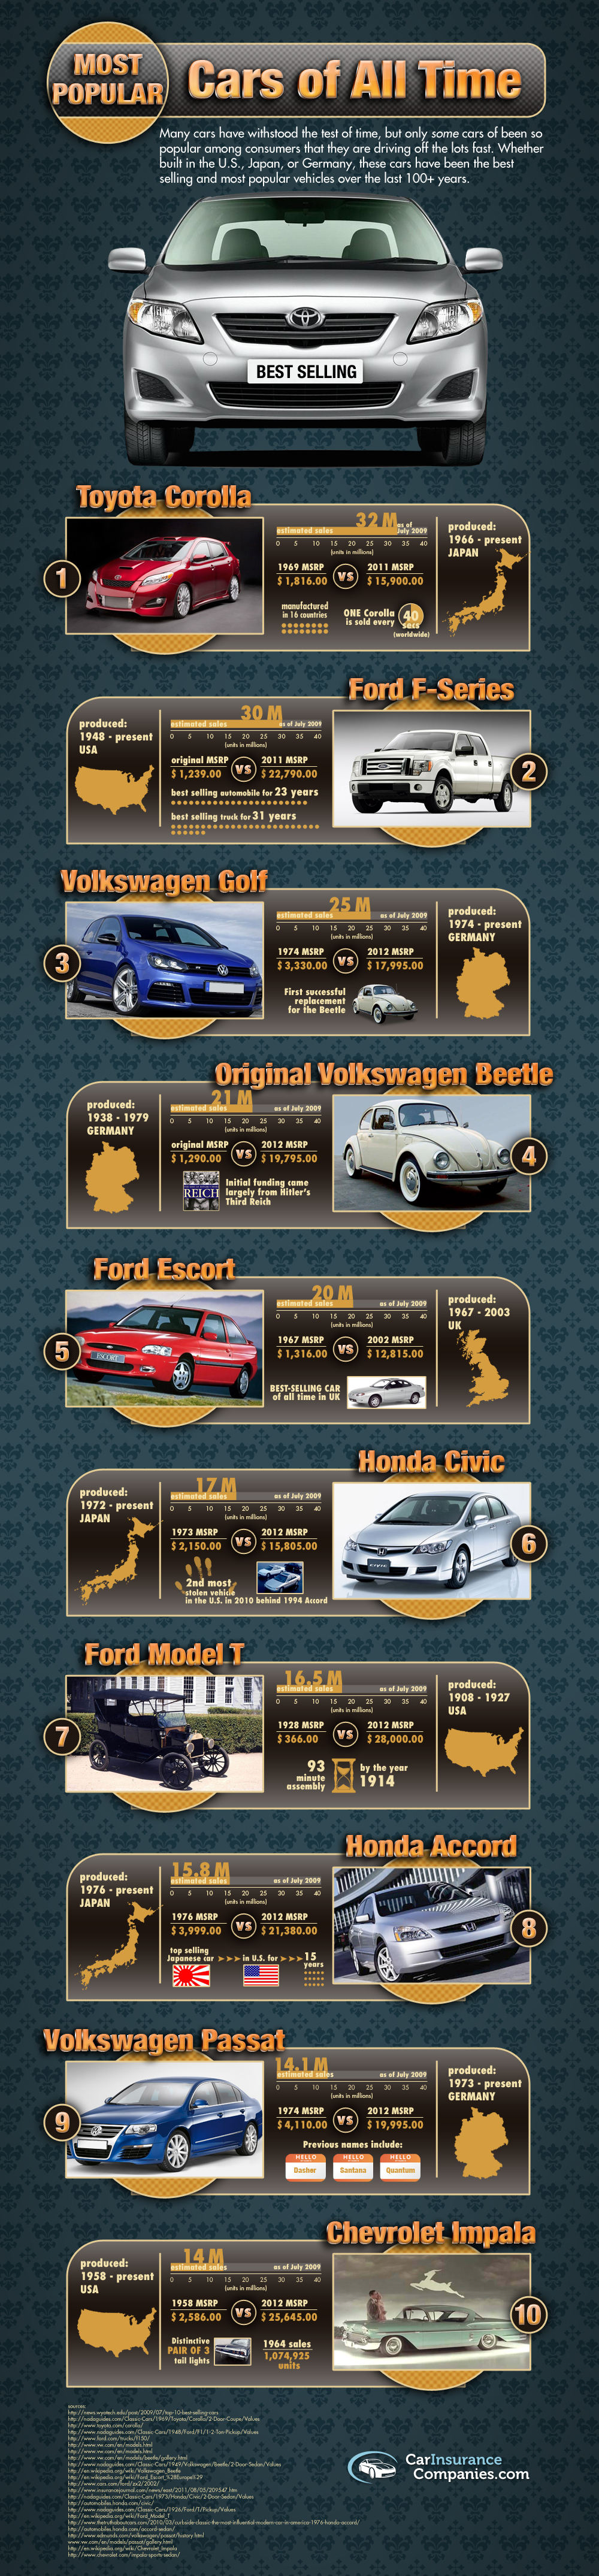 Best Selling Cars